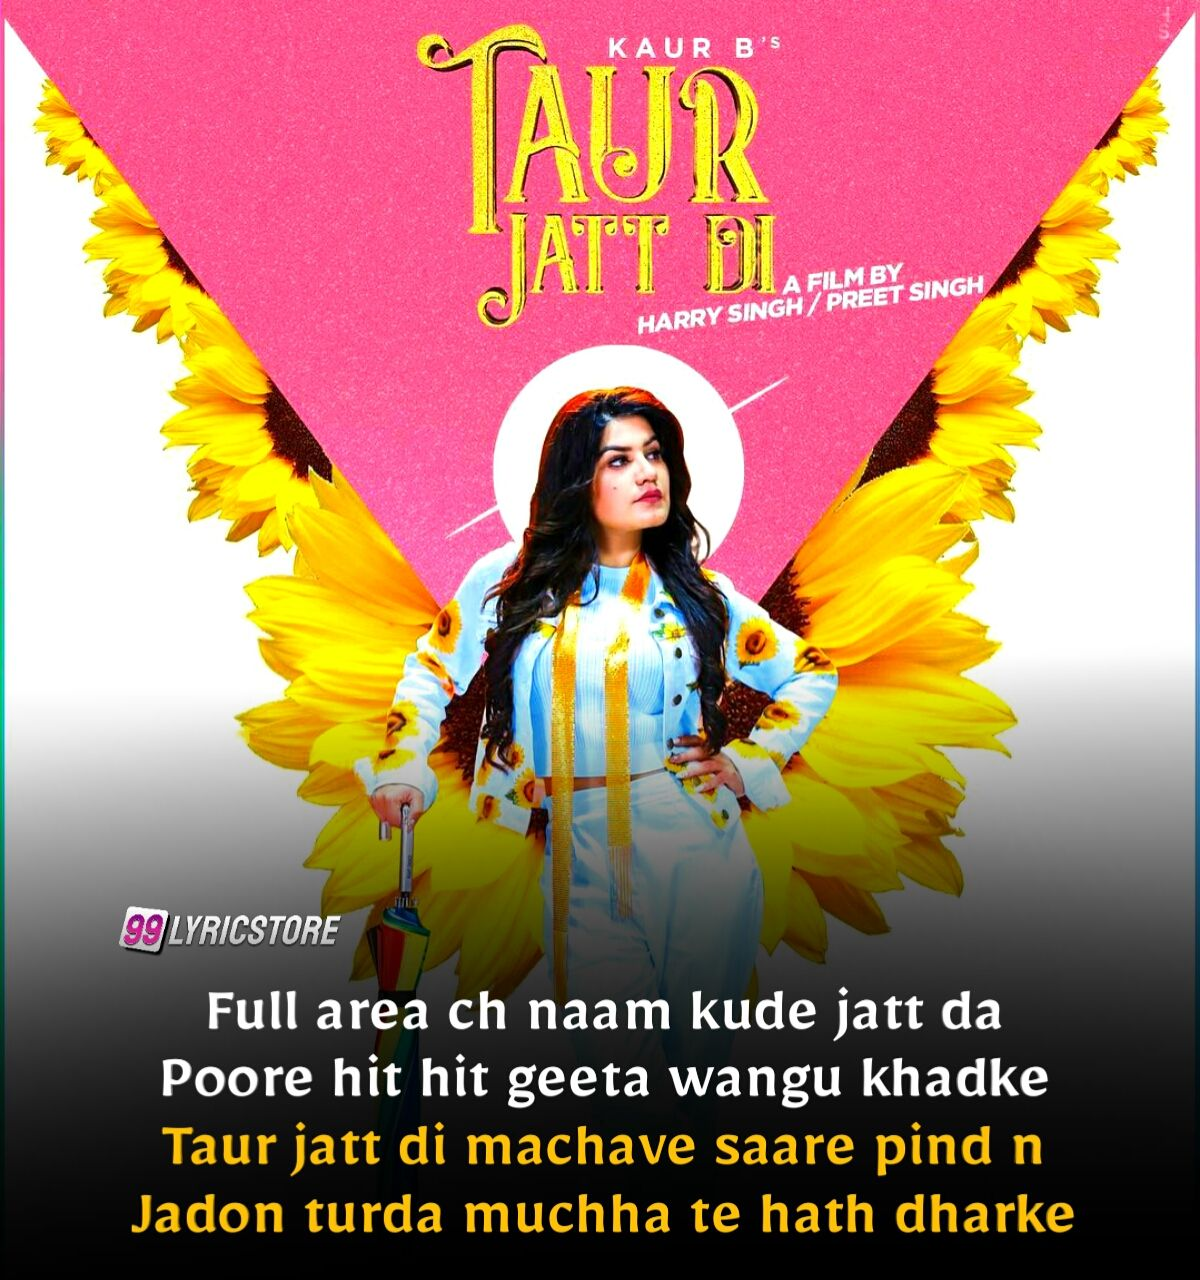 Taur Jatti Di Punjabi Song Lyrics Sung By Kaur B